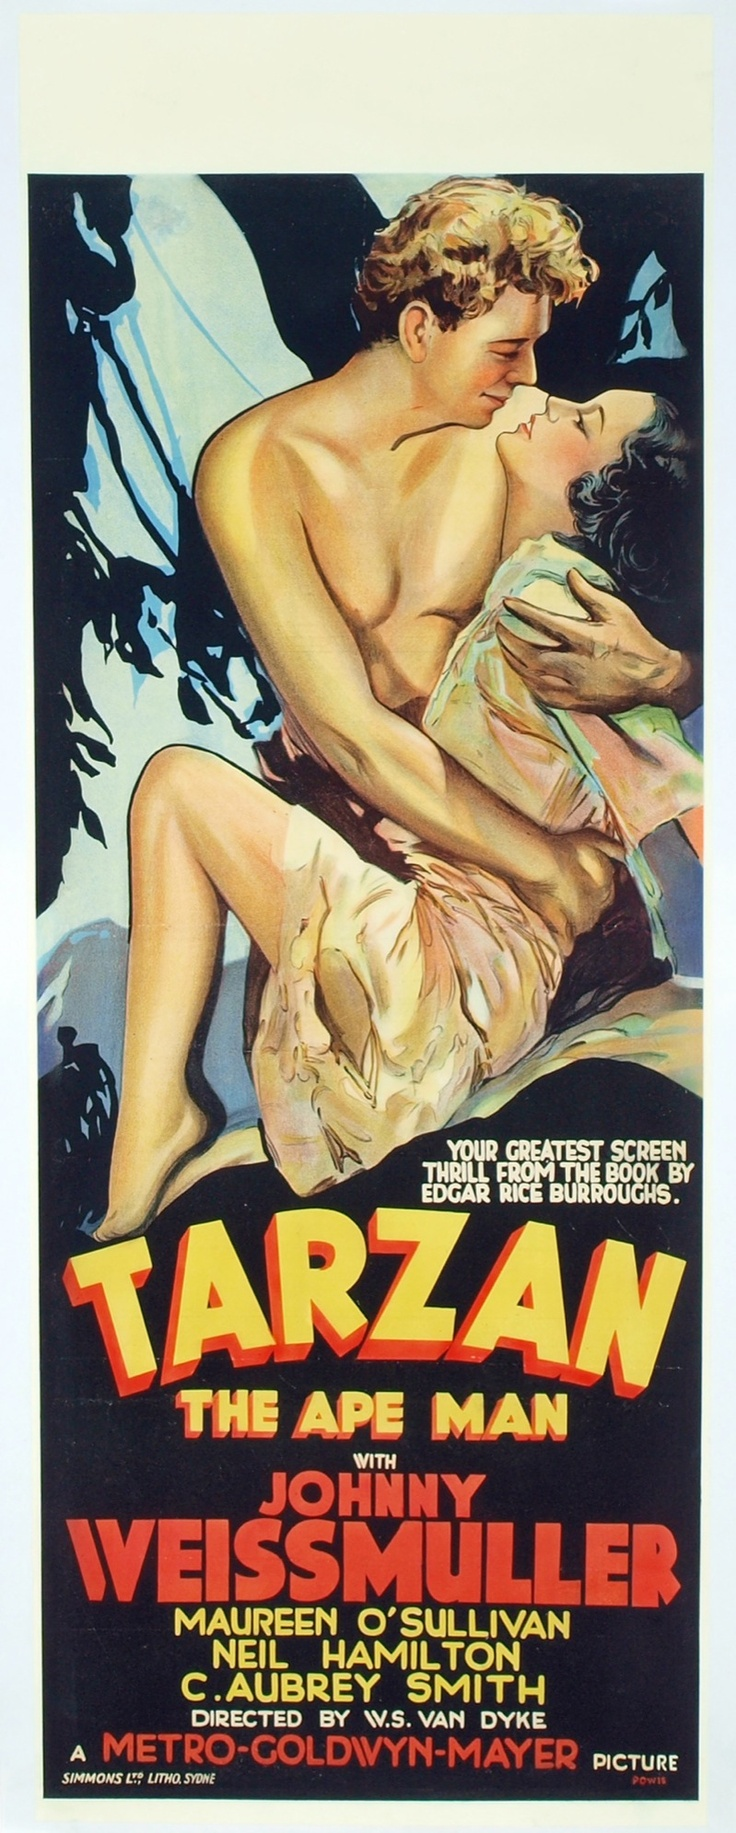 Tarzan the Ape Man, 1932, first of the Johnny Weismuller-Maureen O'Sullivan Tarzan movies.